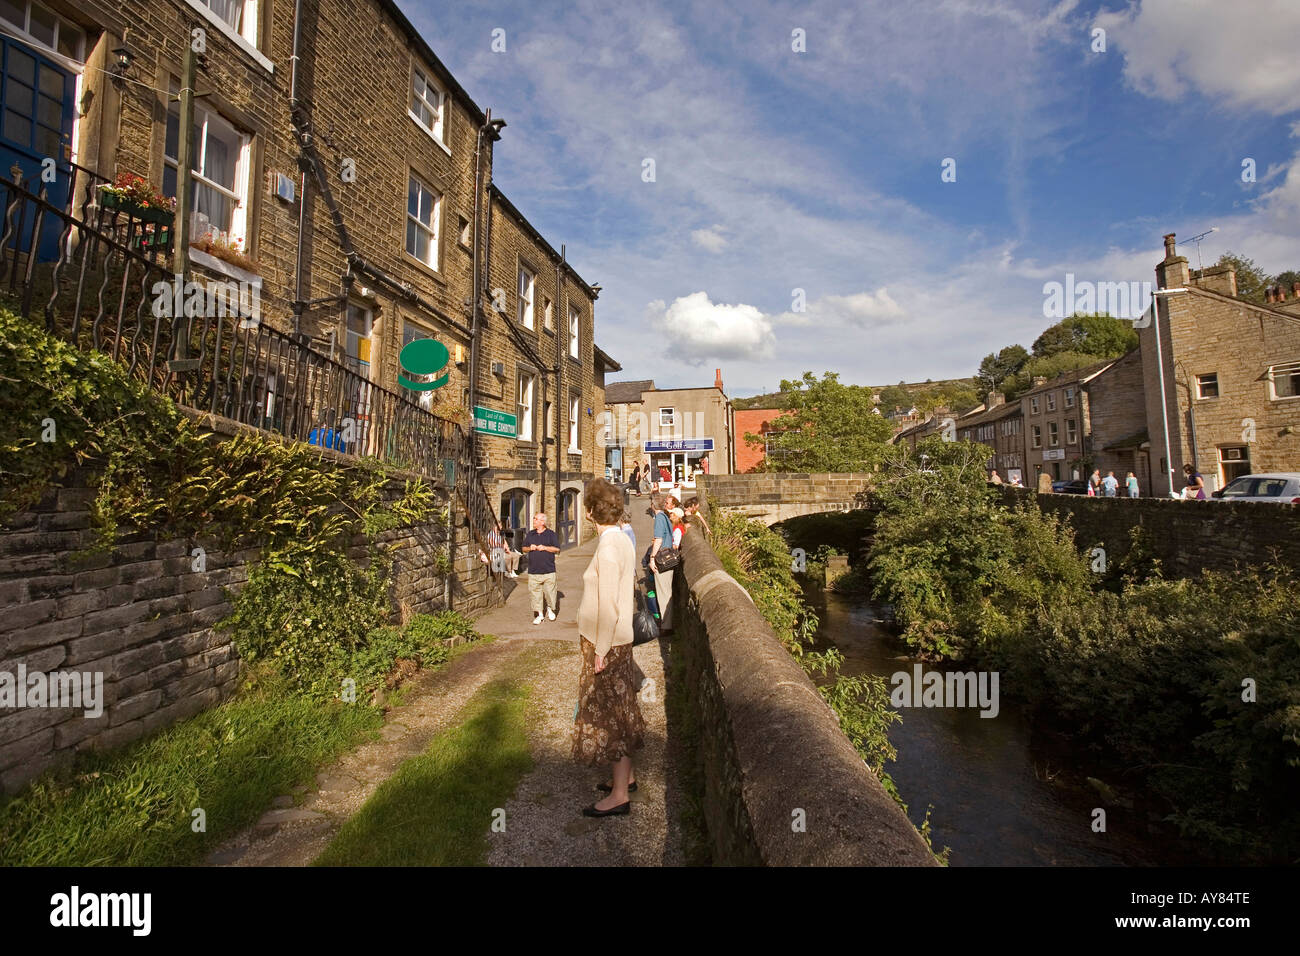 Summer Holiday Film Stock Photos Images Movie Wiring Harness Uk Yorkshire Holmfirth Town Centre Norah Battys House Last Of Wine Location